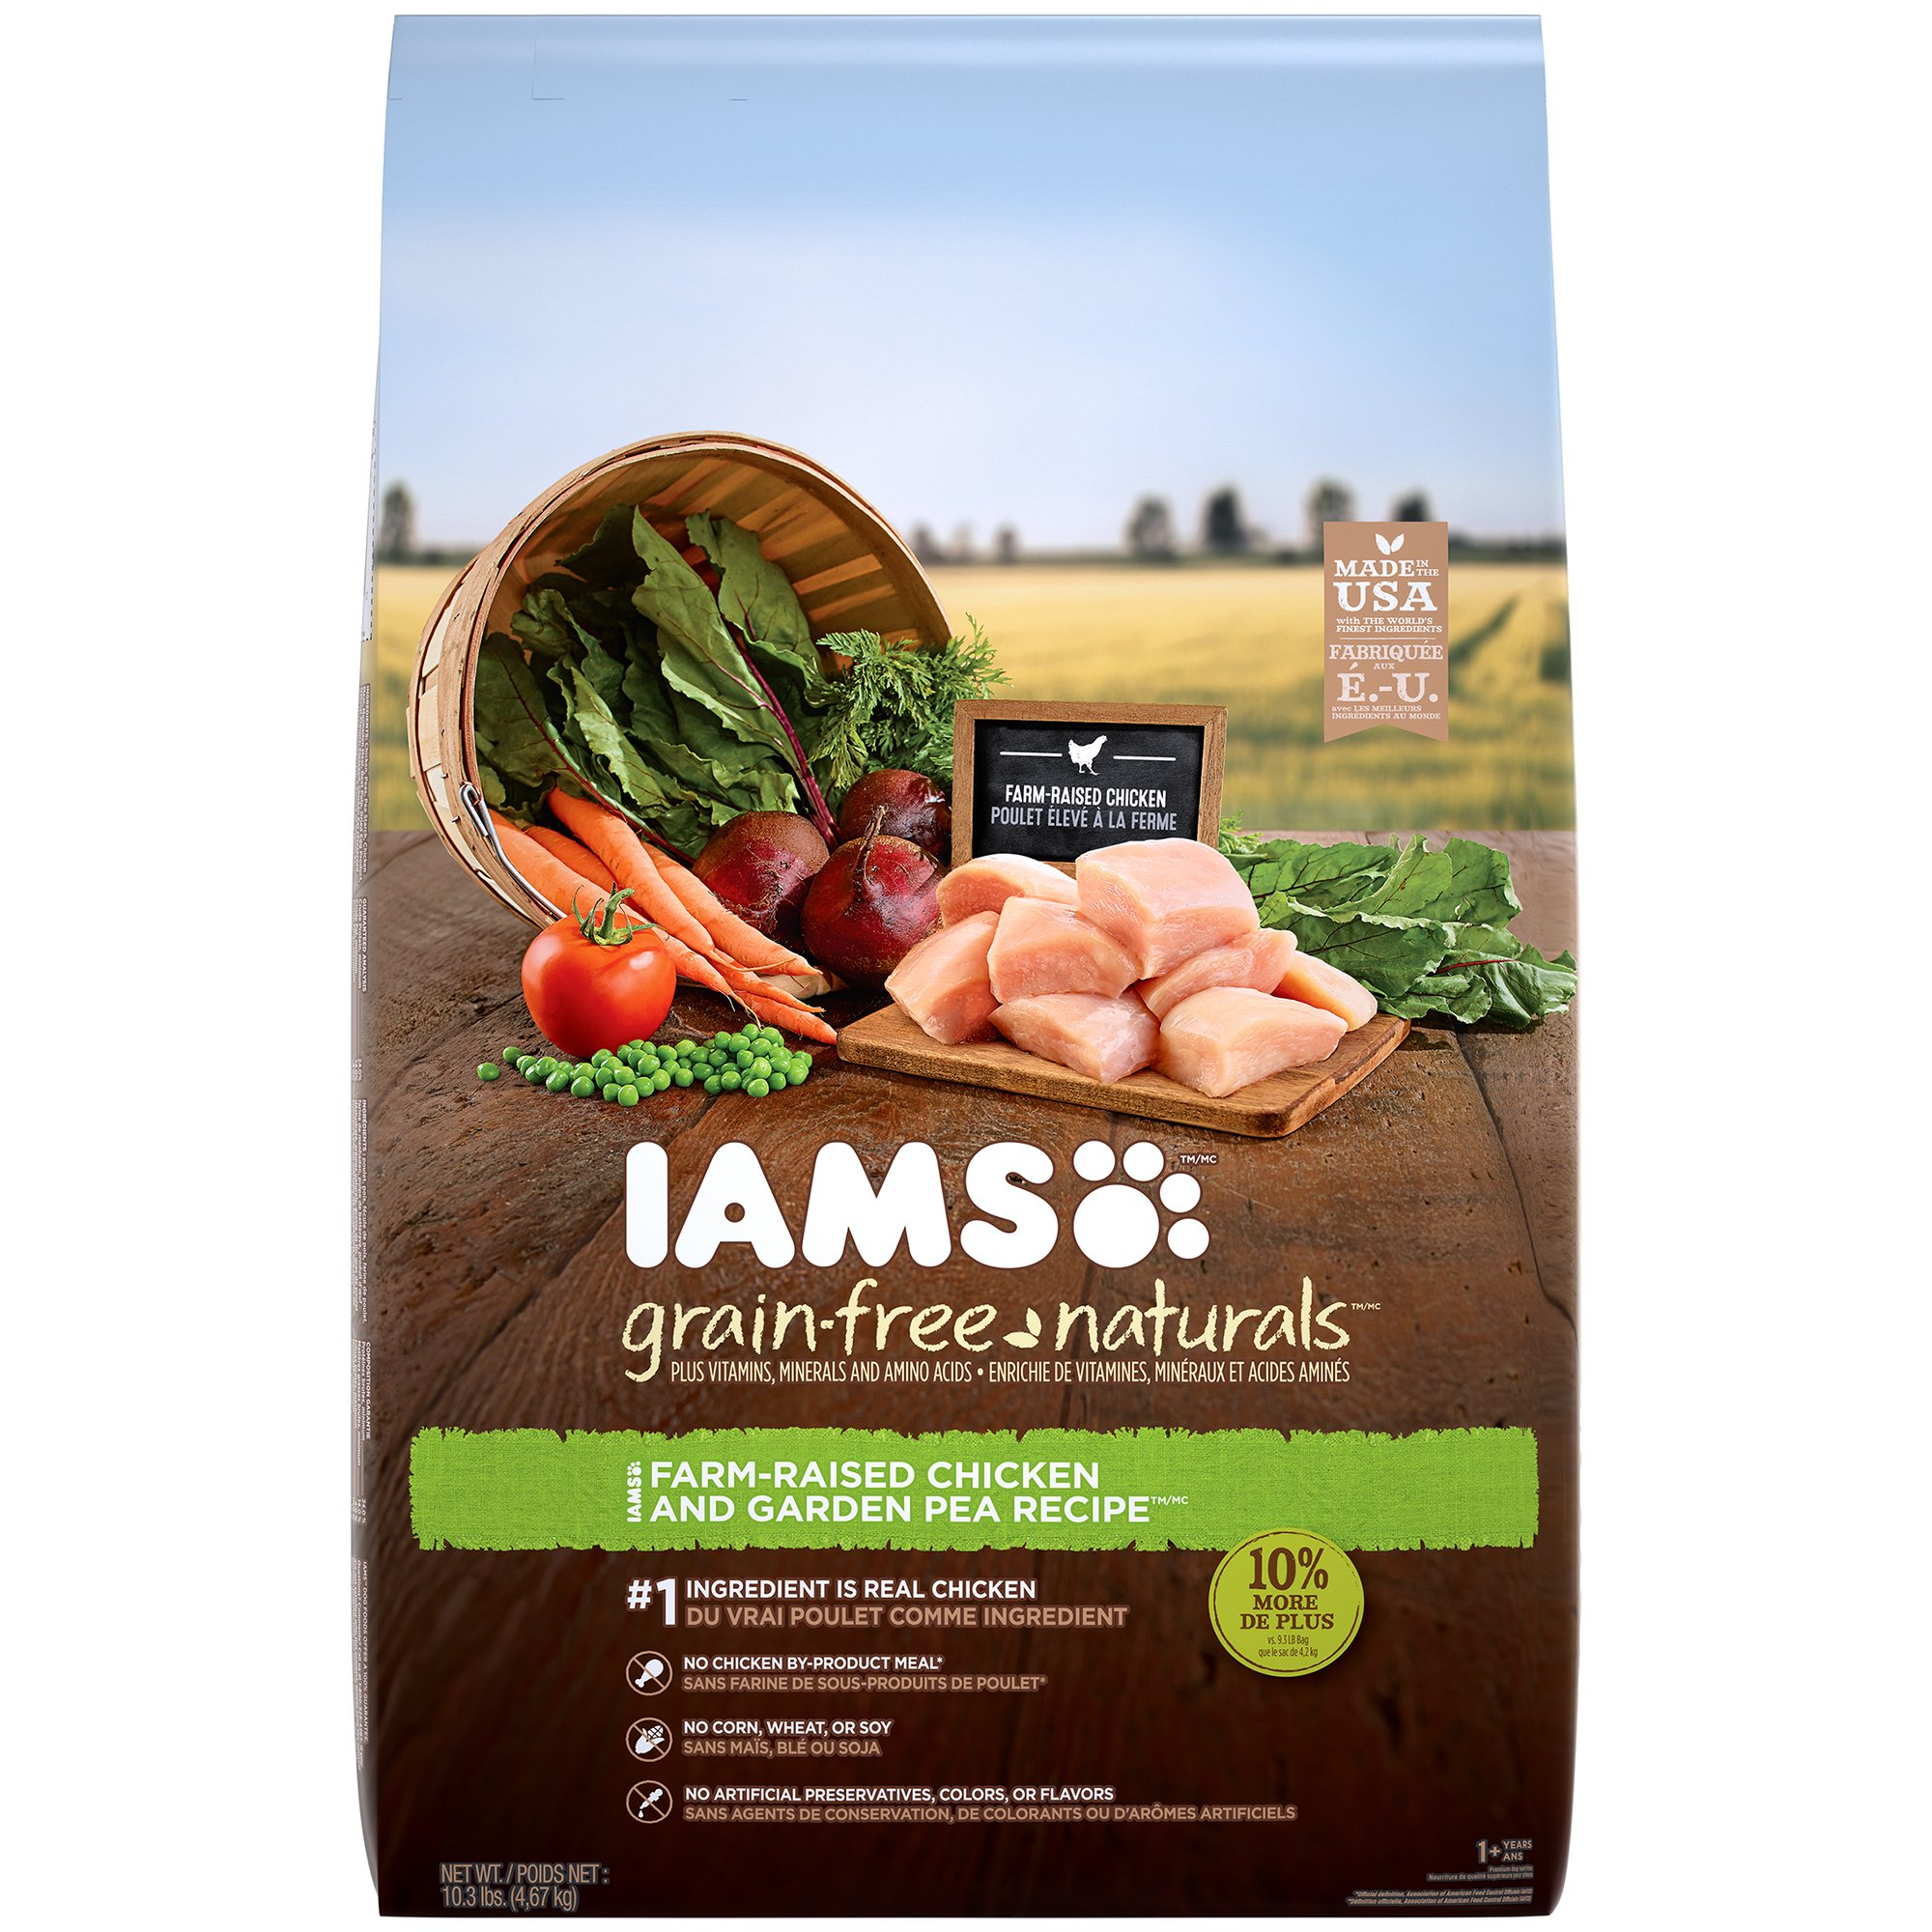 IAMS GRAIN-FREE NATURALS Adult Chicken and Pea Recipe Dry Dog Food 10.3 Pounds (Discontinued by Manufacturer)